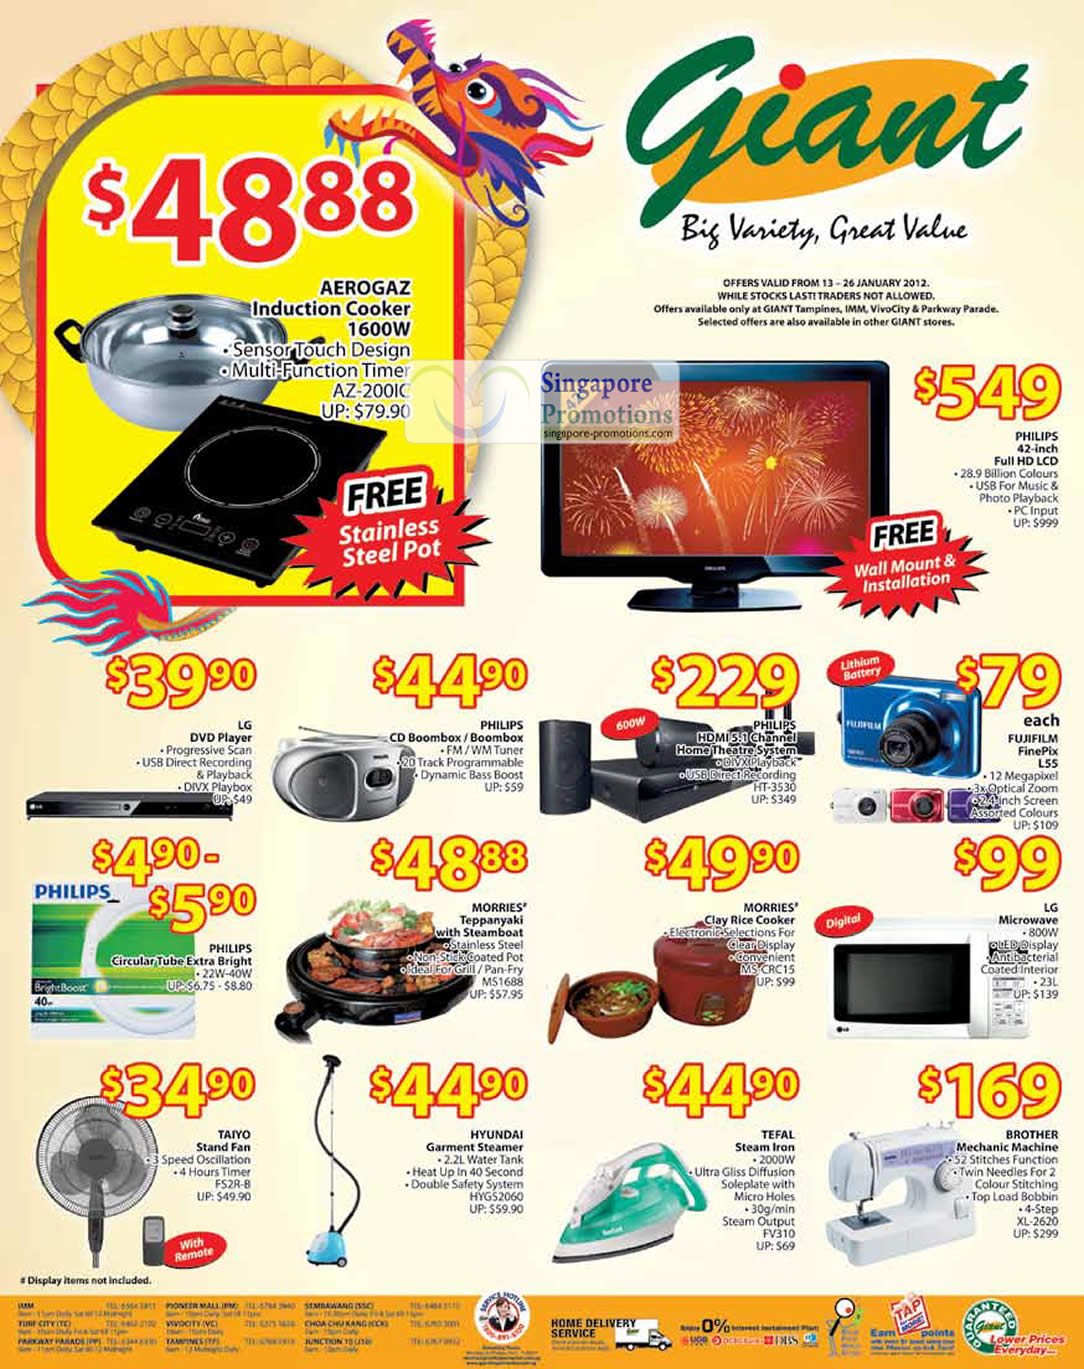 AEROGAZ Induction Cooker AZ-200IC, PHILIPS Home Theatre System HT-3530, FUJIFILM FinePix L55, MORRIES Cay Rice Cooker MS-CRC15, MORRIES Teppanyaki with Steamboat MS1688, TAIY0 Stand Fan FS2R-B, HYUNDAI Garment Steamer HYGS2060, TEFAL Steam Iron FV310, BROTHER Mechanic Machine XL-2620,